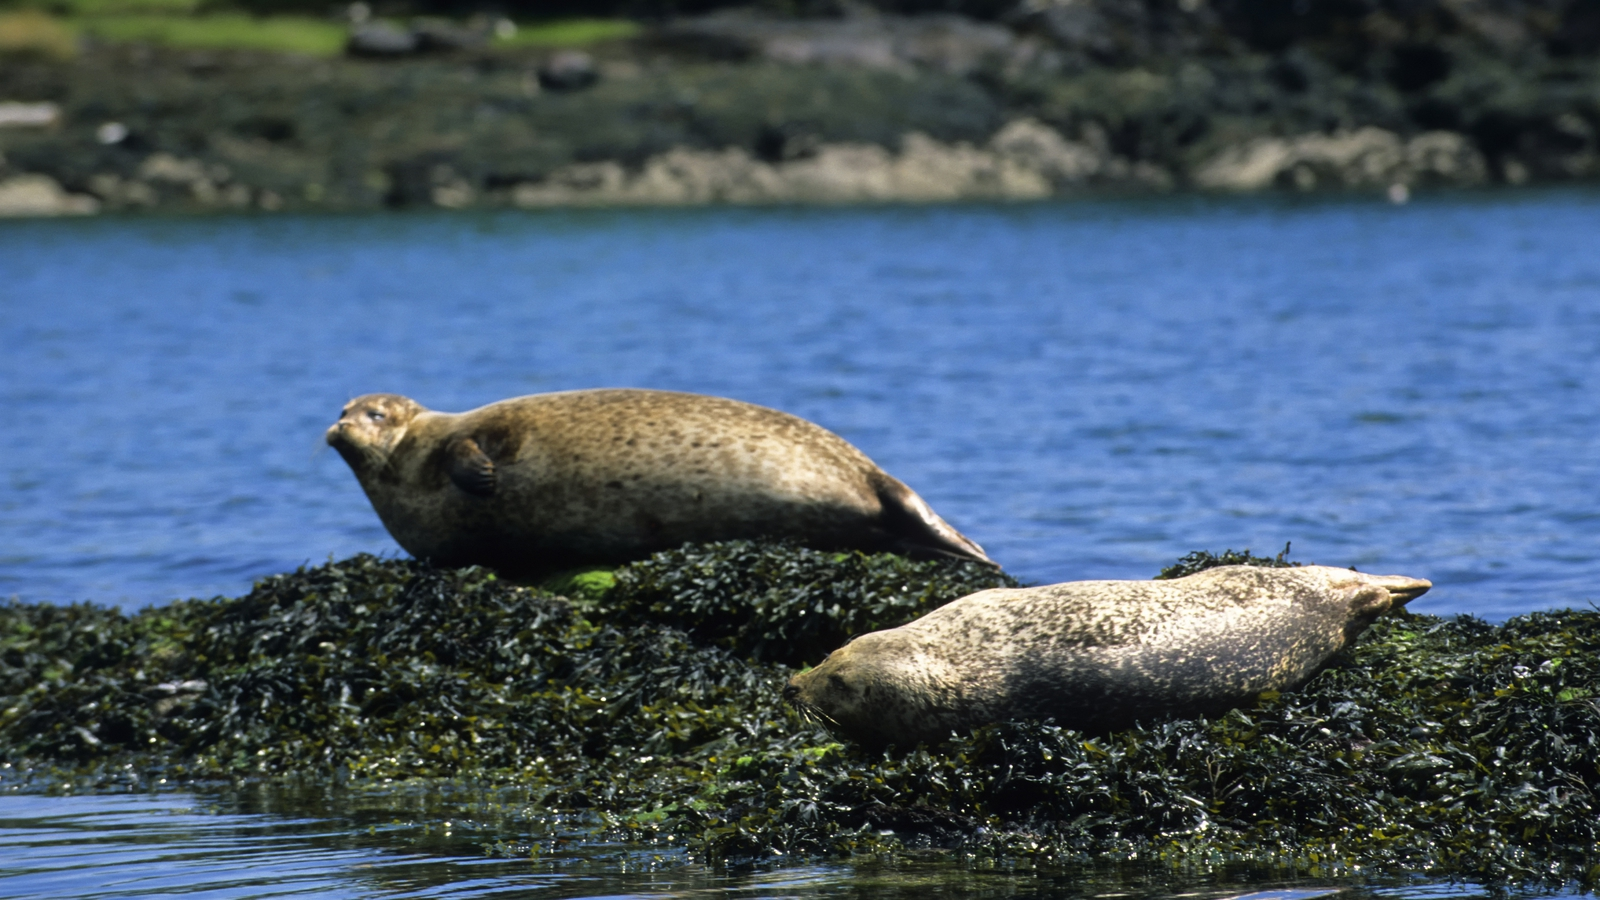 Image - Activists believe there are more sustainable alternatives to culling seals